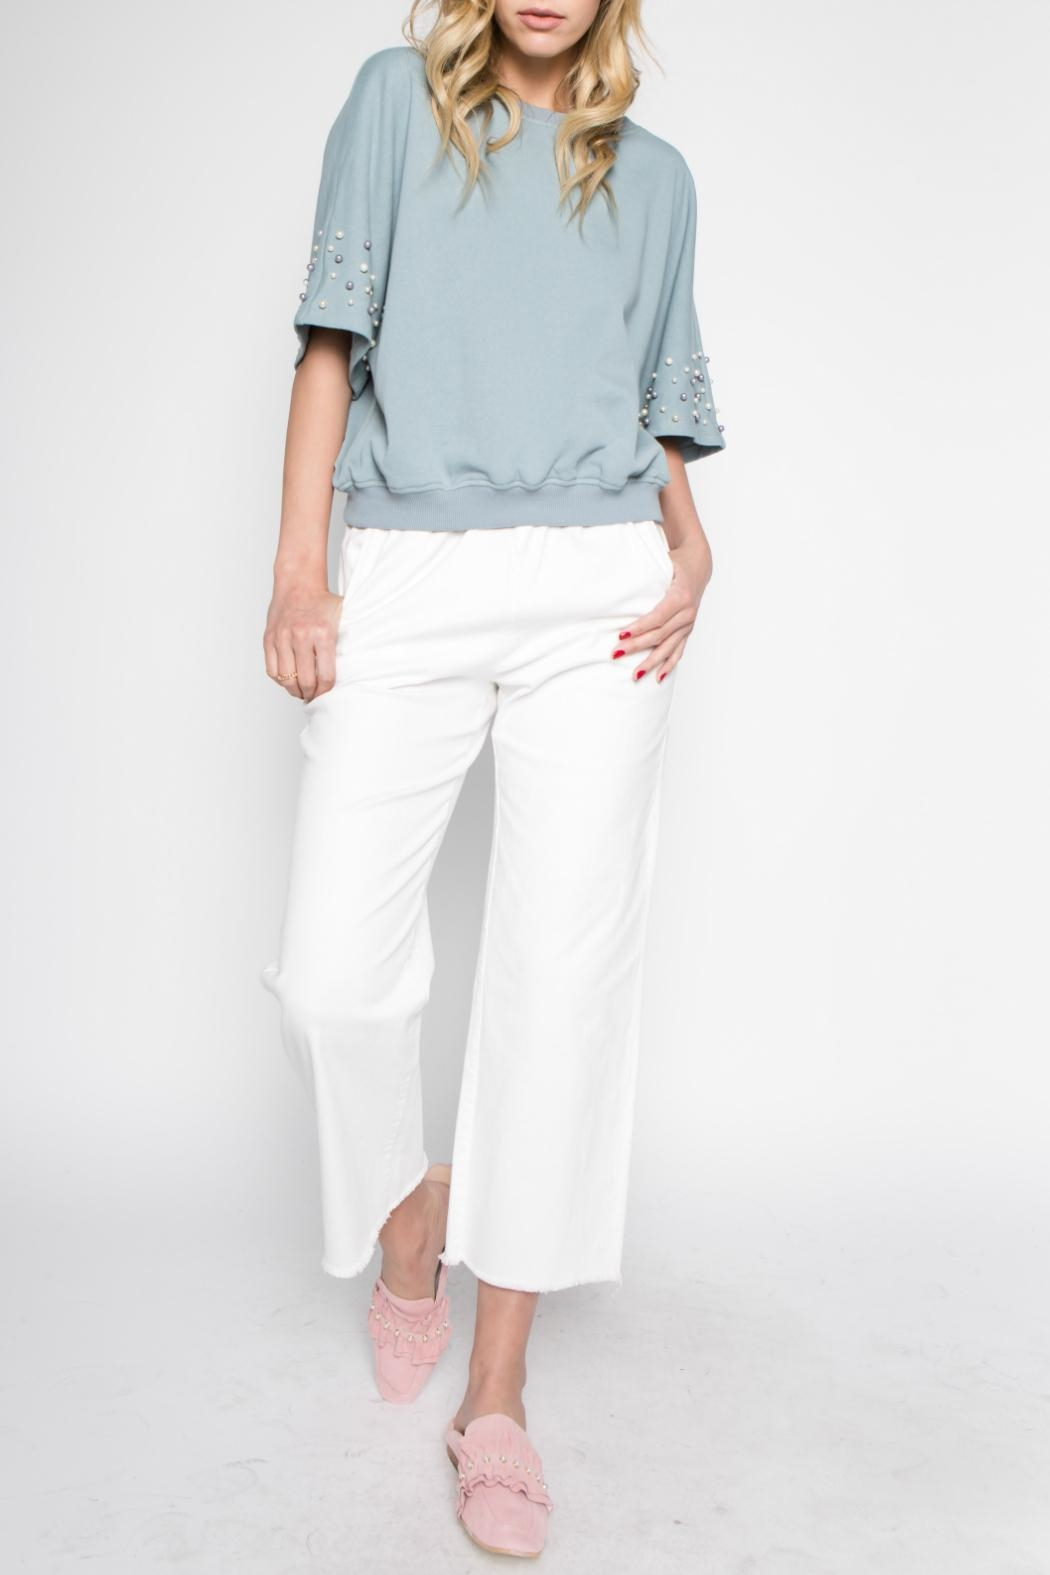 Hashtag Pearl Accent Top - Main Image